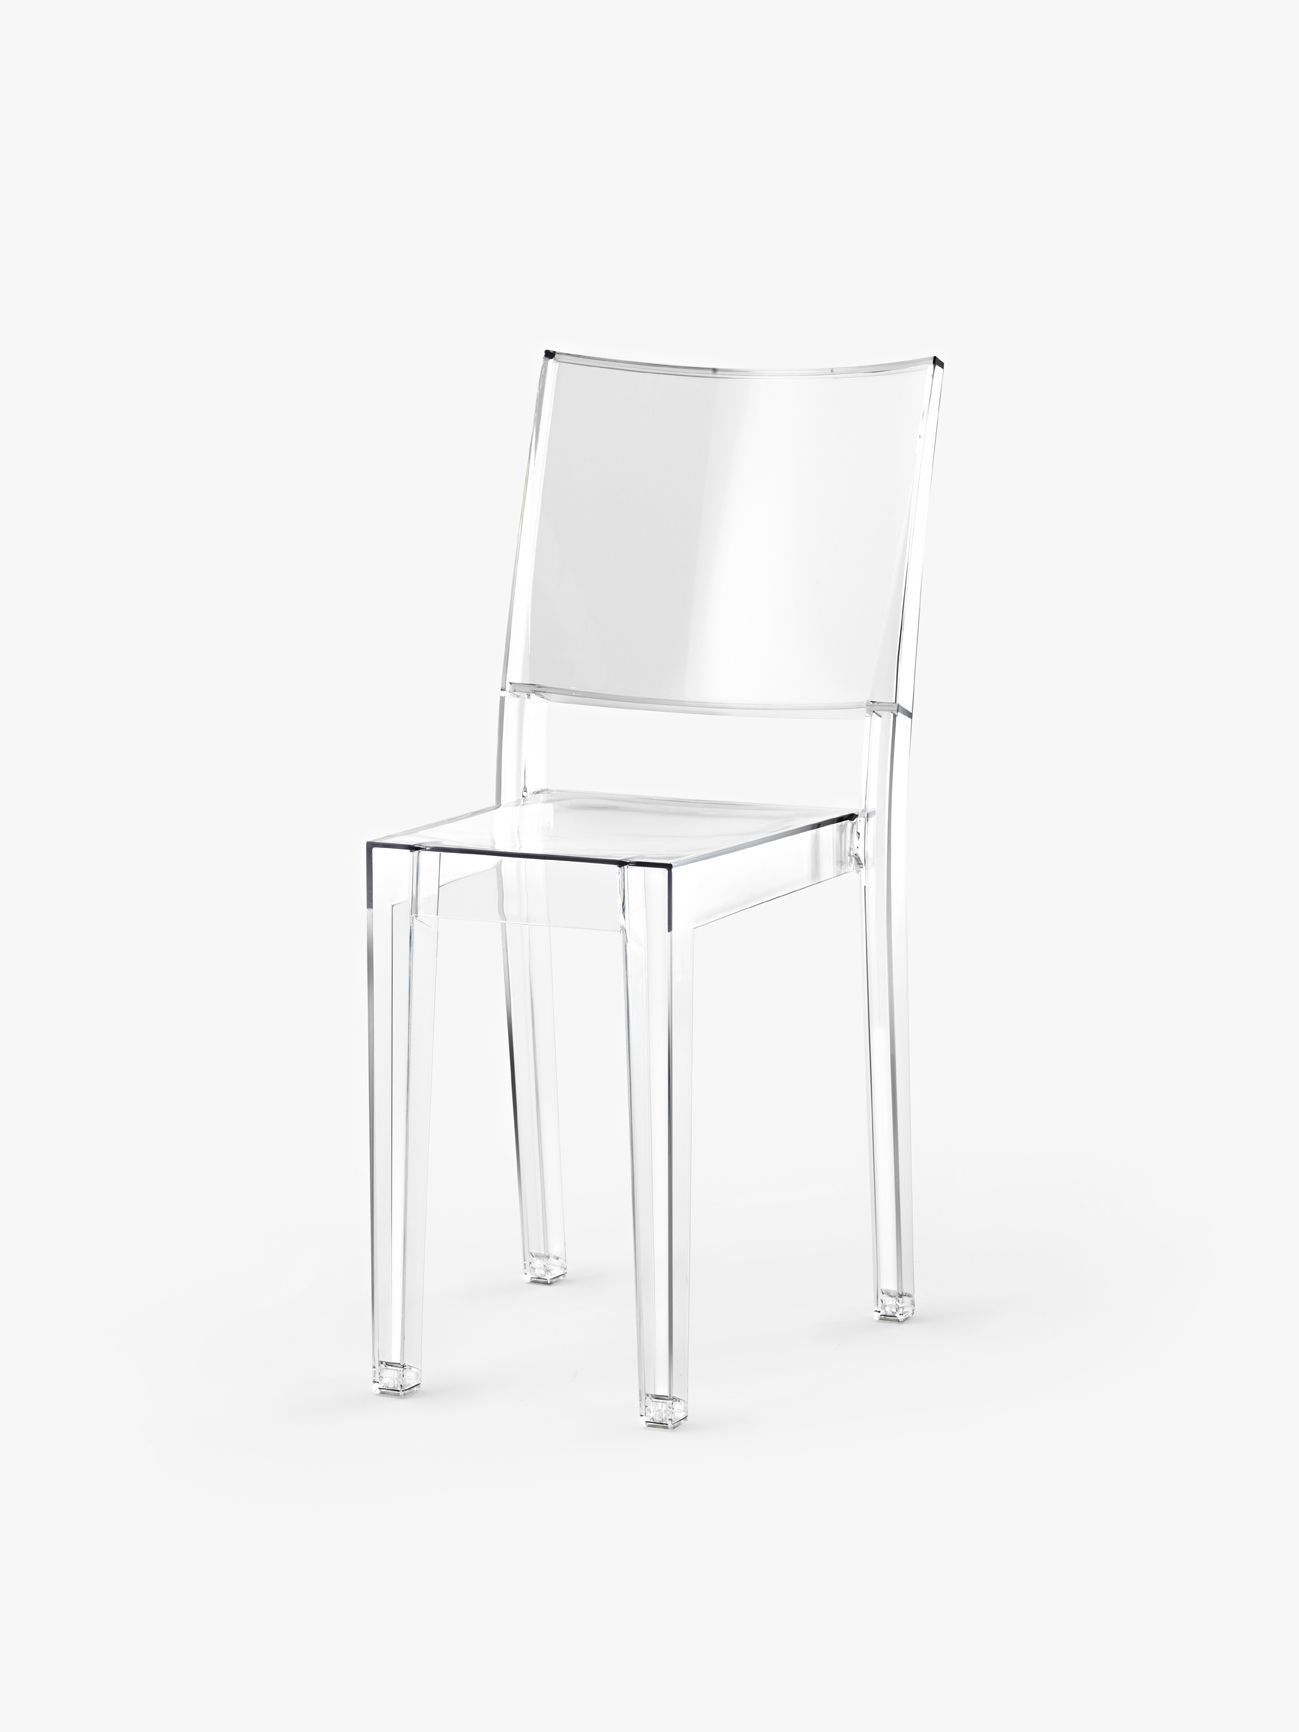 first high chair invented old parts philippe starck la marie the worlds completely